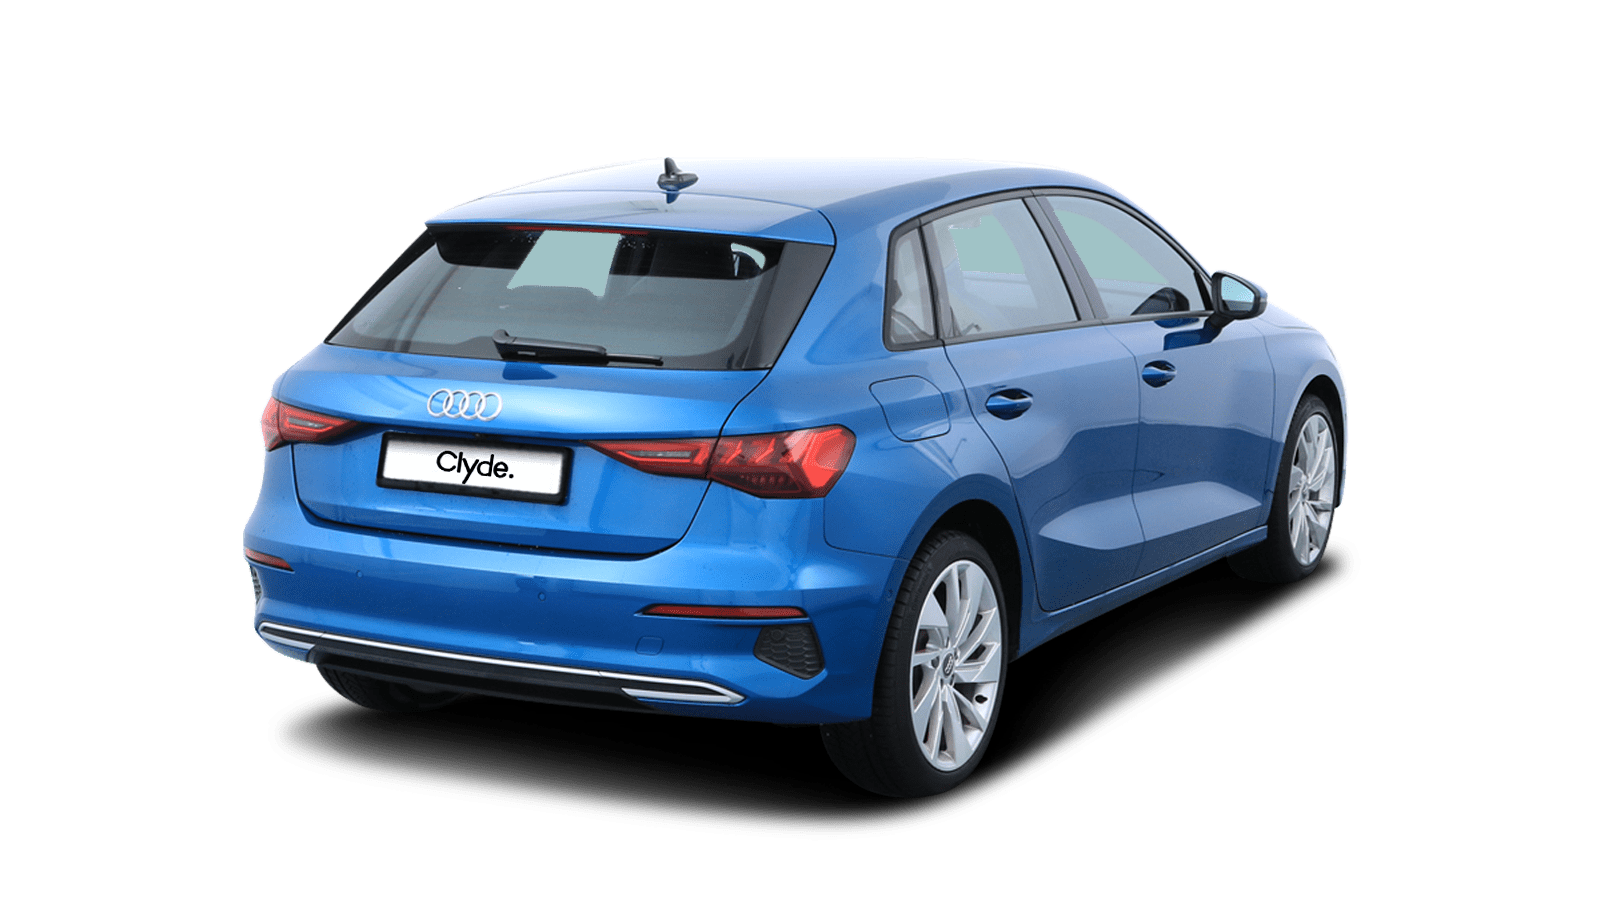 Audi A3 Sportback Blue front - Clyde car subscription